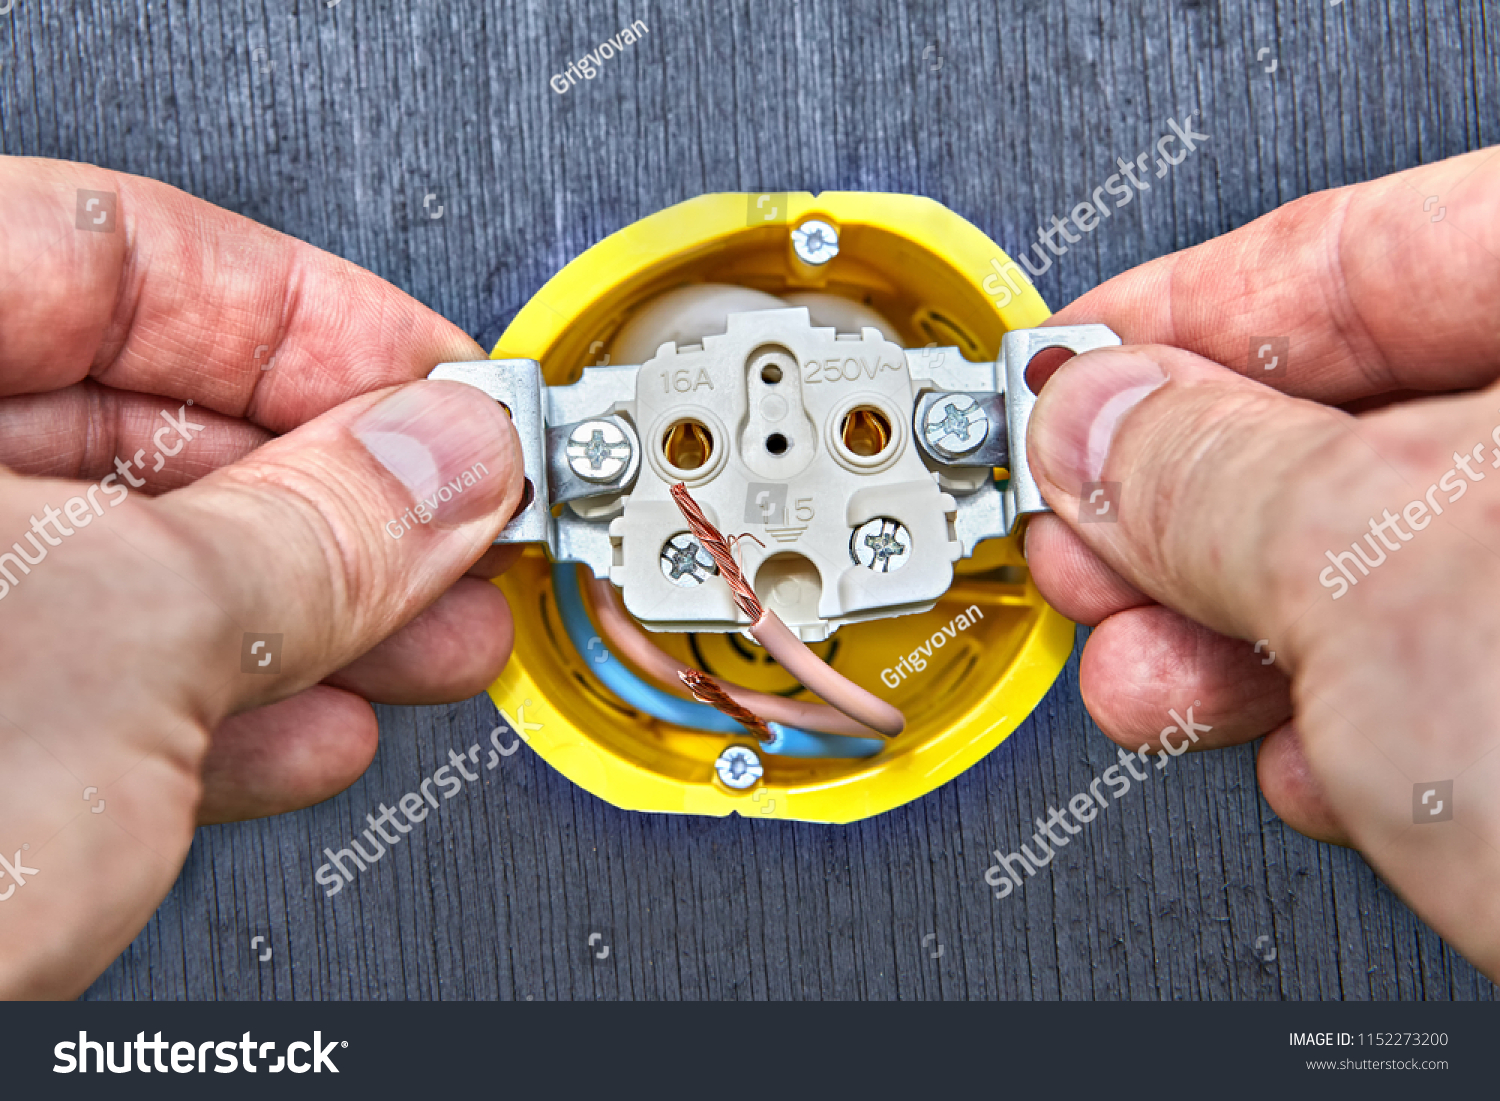 Installation Wall Electric Socket Yellow Outlet Stock Photo Edit Electrical Wiring For Of In Box Domestic